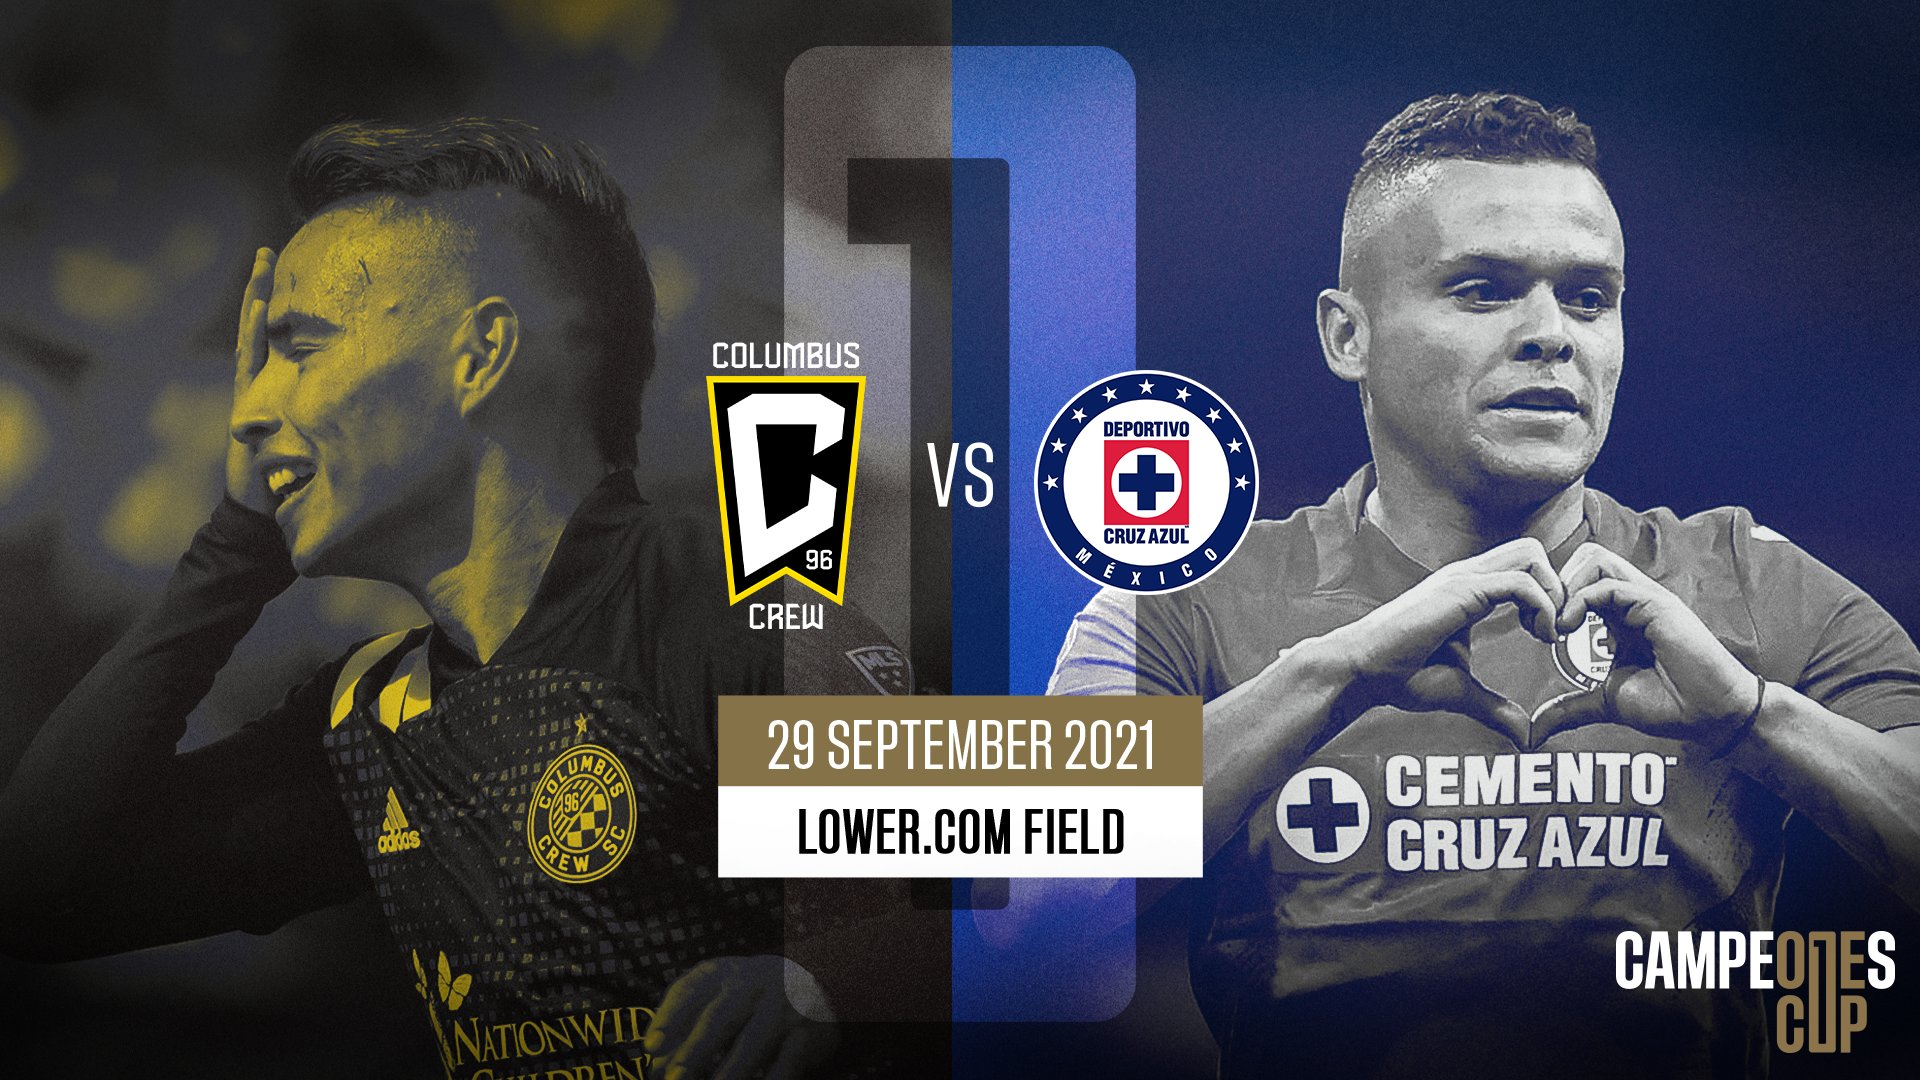 Columbus Crew to host Campeones Cup 2021 against Cruz Azul at Lower.com Field on September 29 | MLSSoccer.com